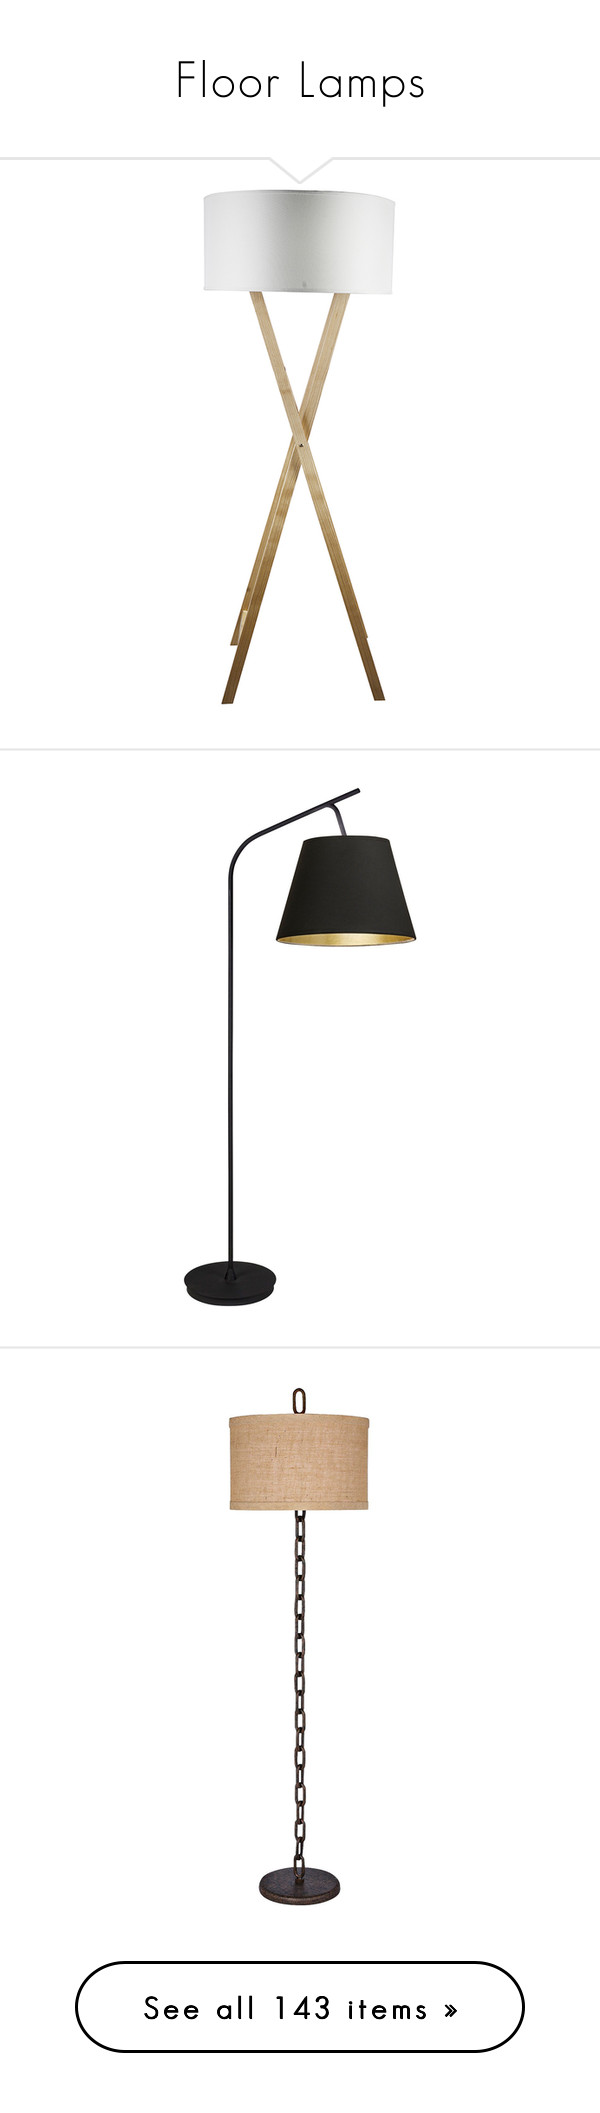 Floor lamps by sallysimpson on polyvore featuring home lighting